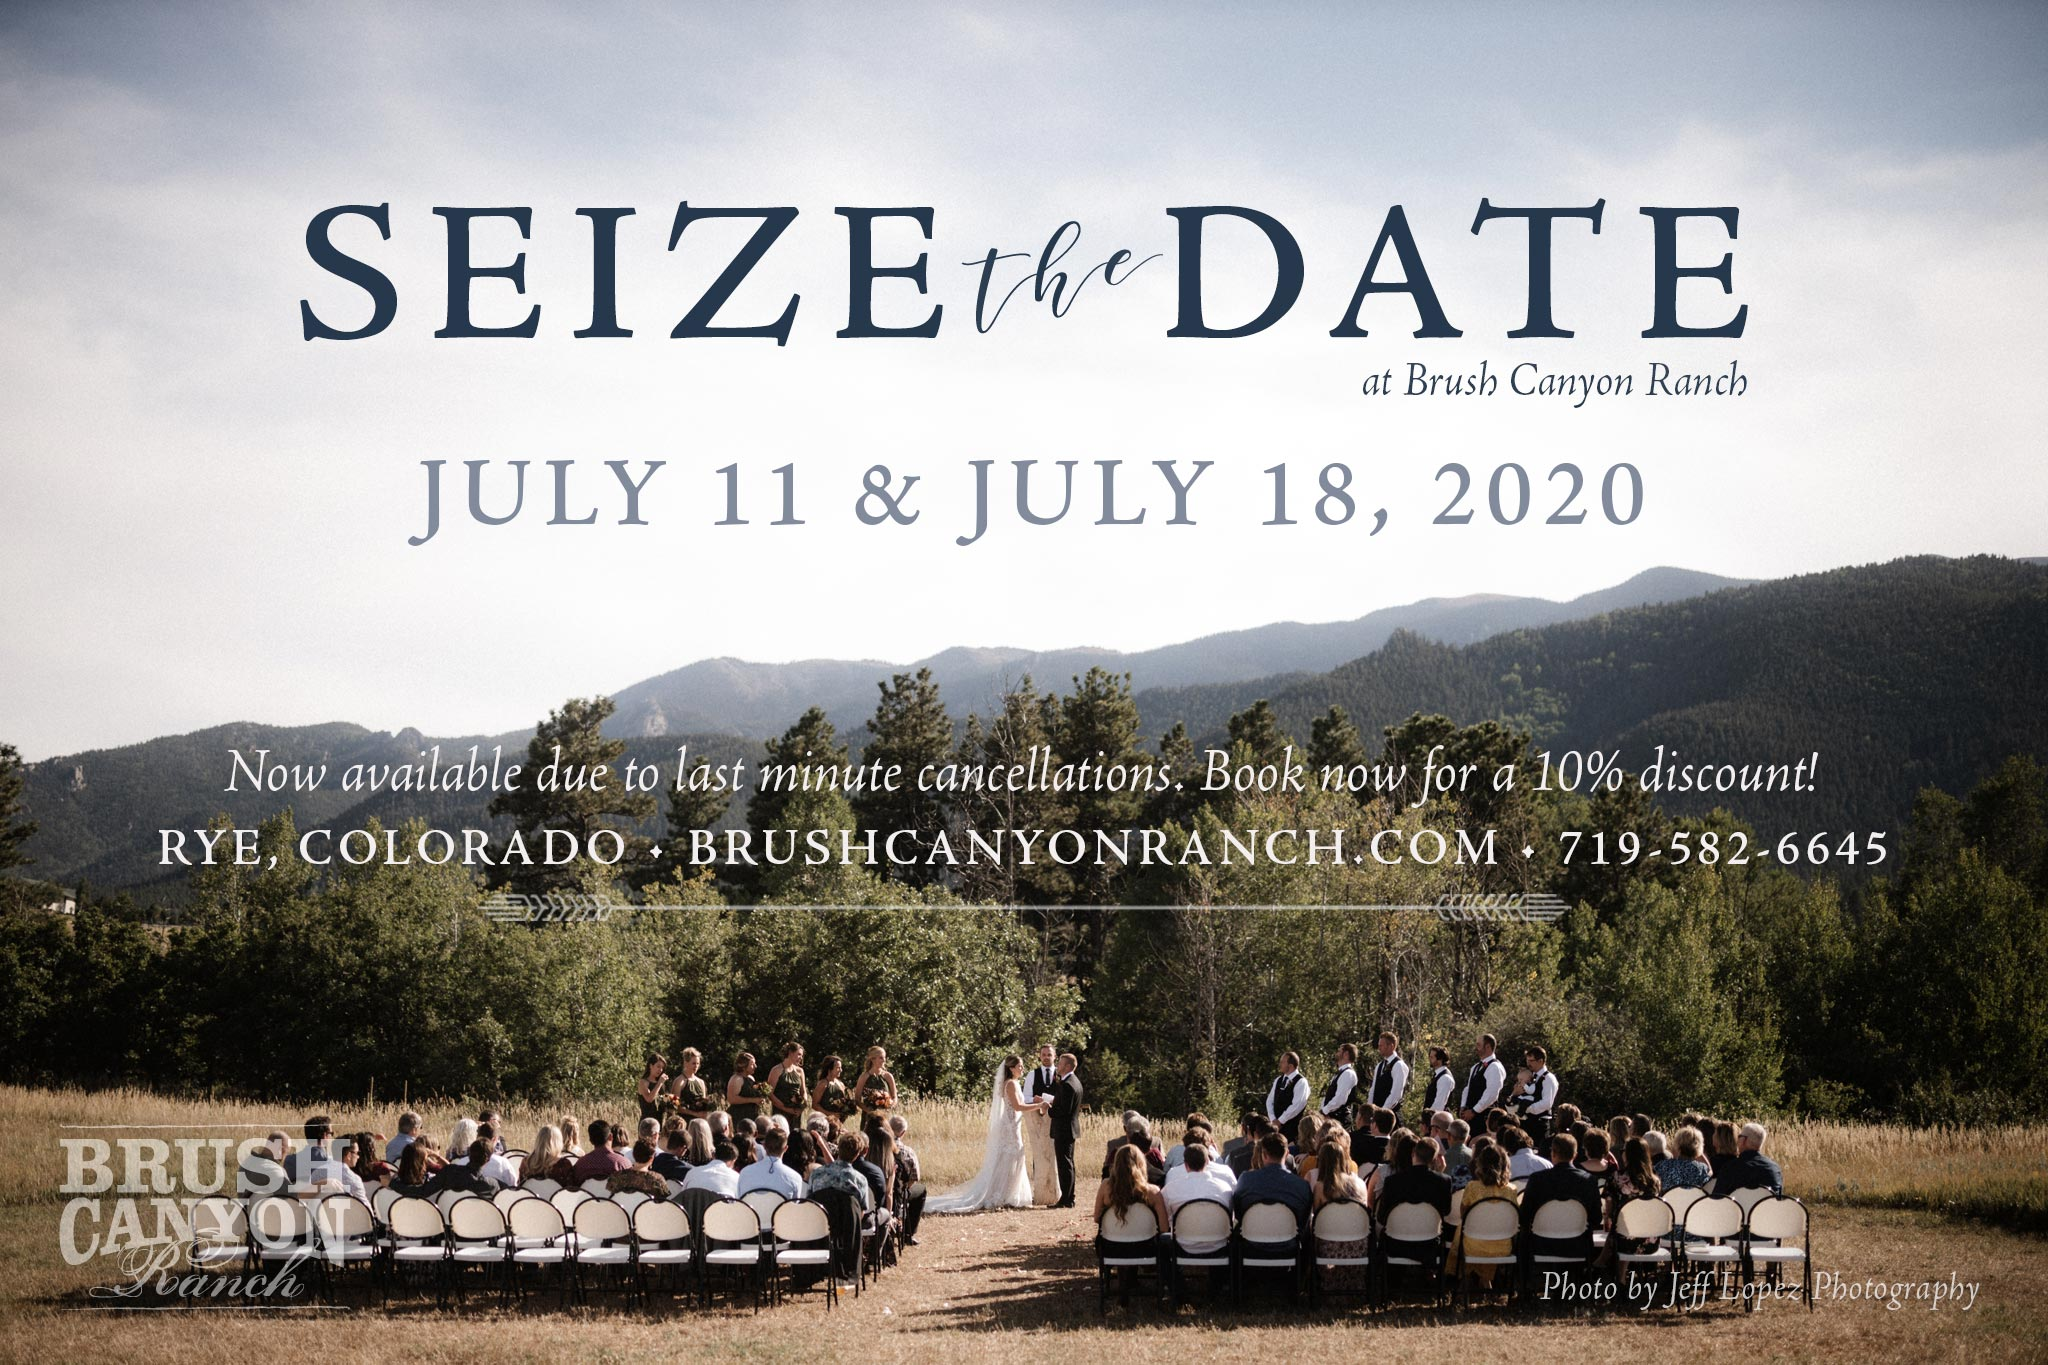 Seize the Date with a Discount for 2020